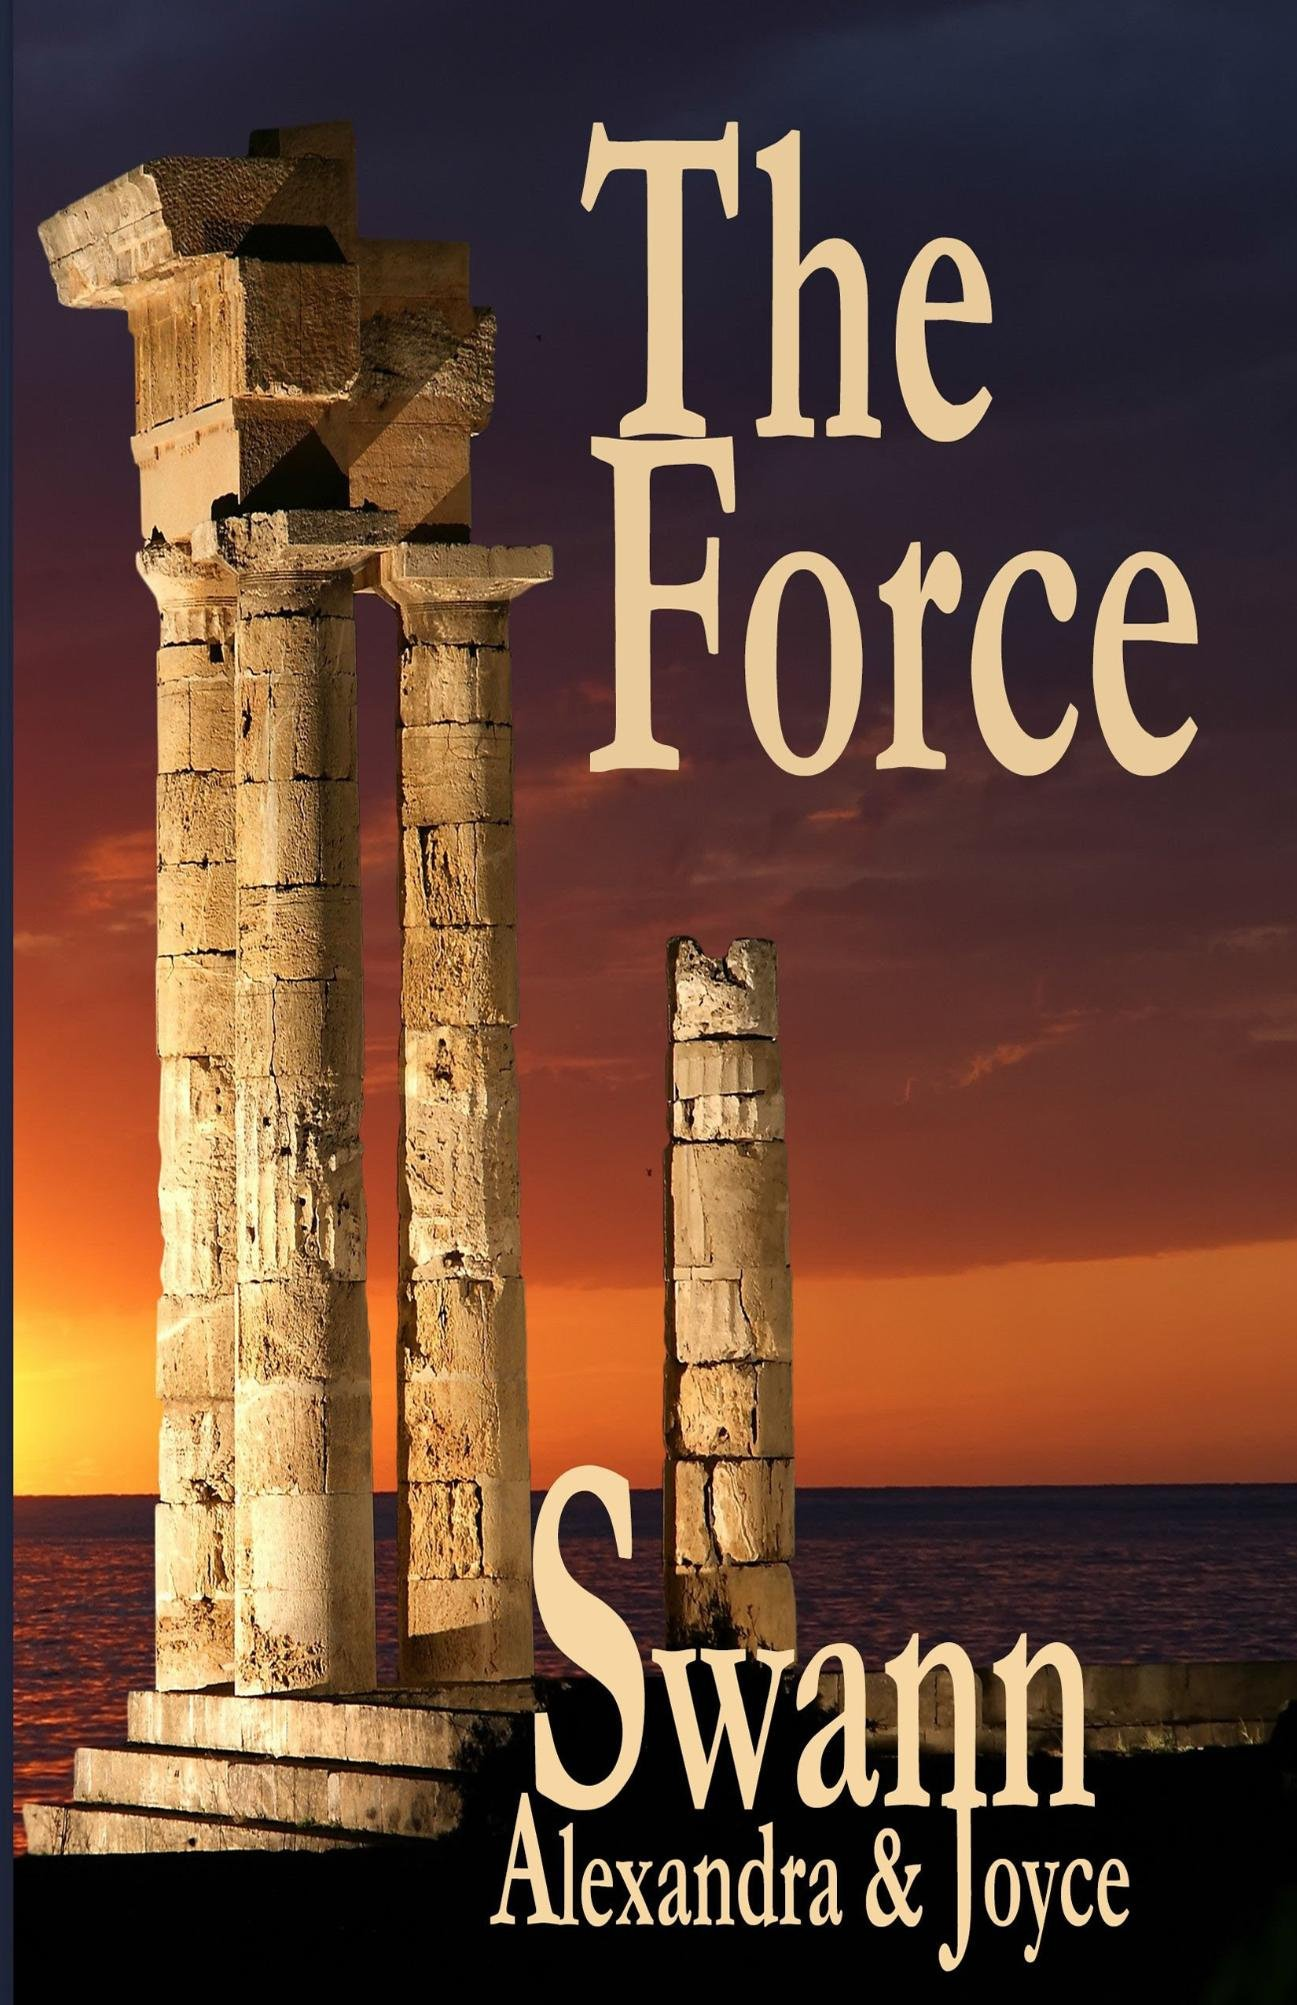 https://0201.nccdn.net/1_2/000/000/198/a24/The_Force_Cover_for_Kindle-1297x2005.jpg